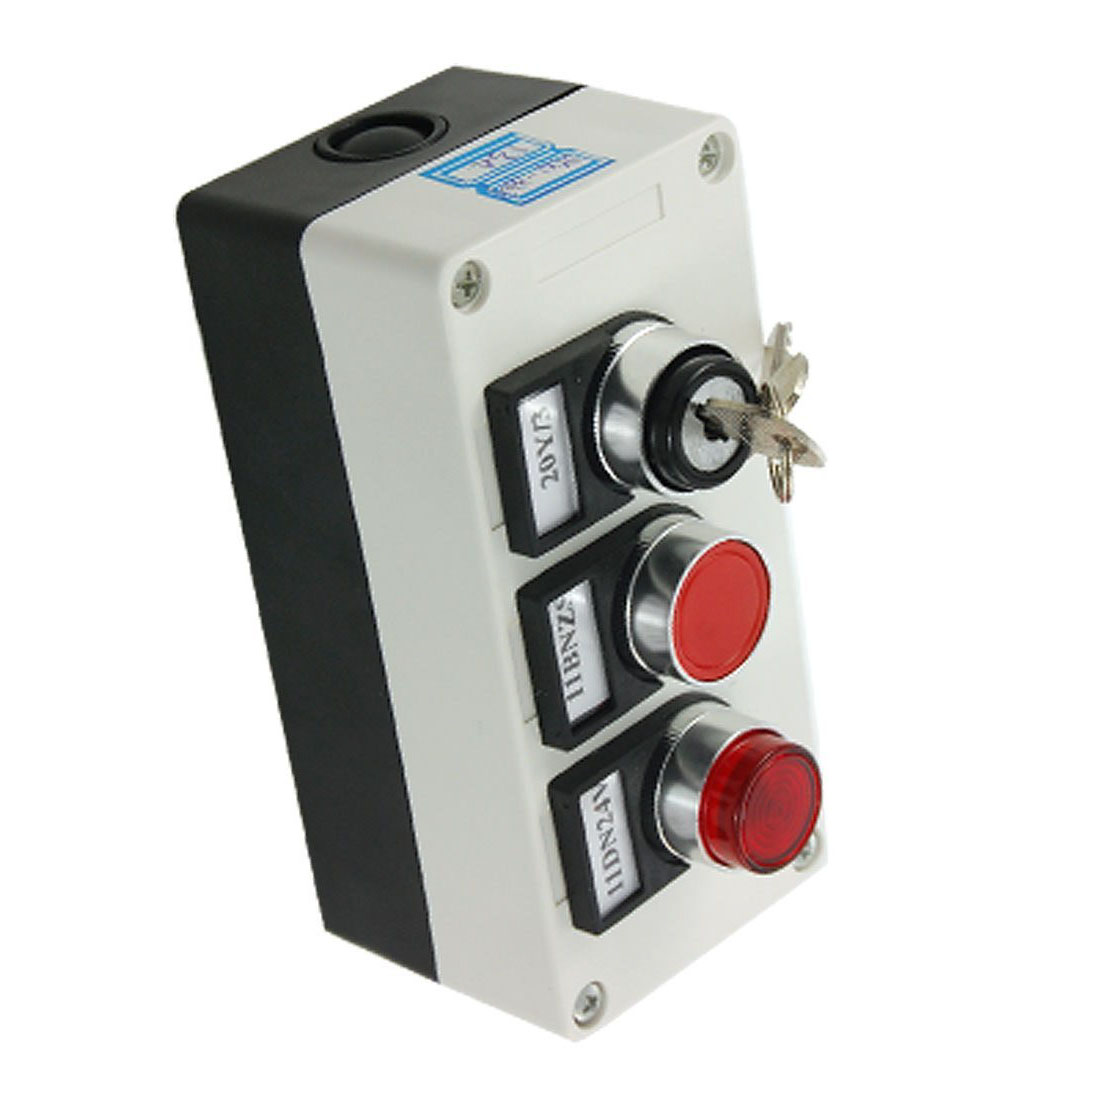 Promotion! 3 in 1 Key Locking Red Light Push Button Switch Station